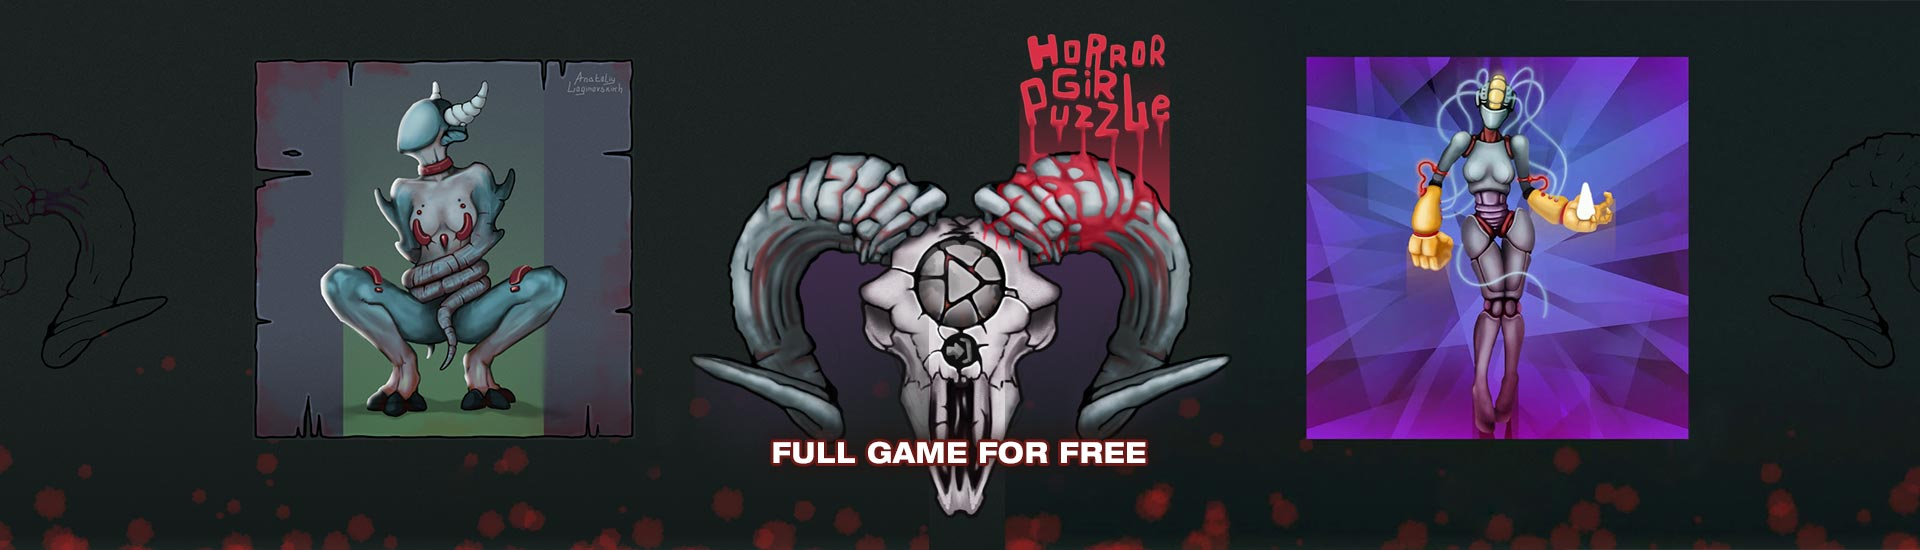 Horror Girl Puzzle | Indiegala Developers